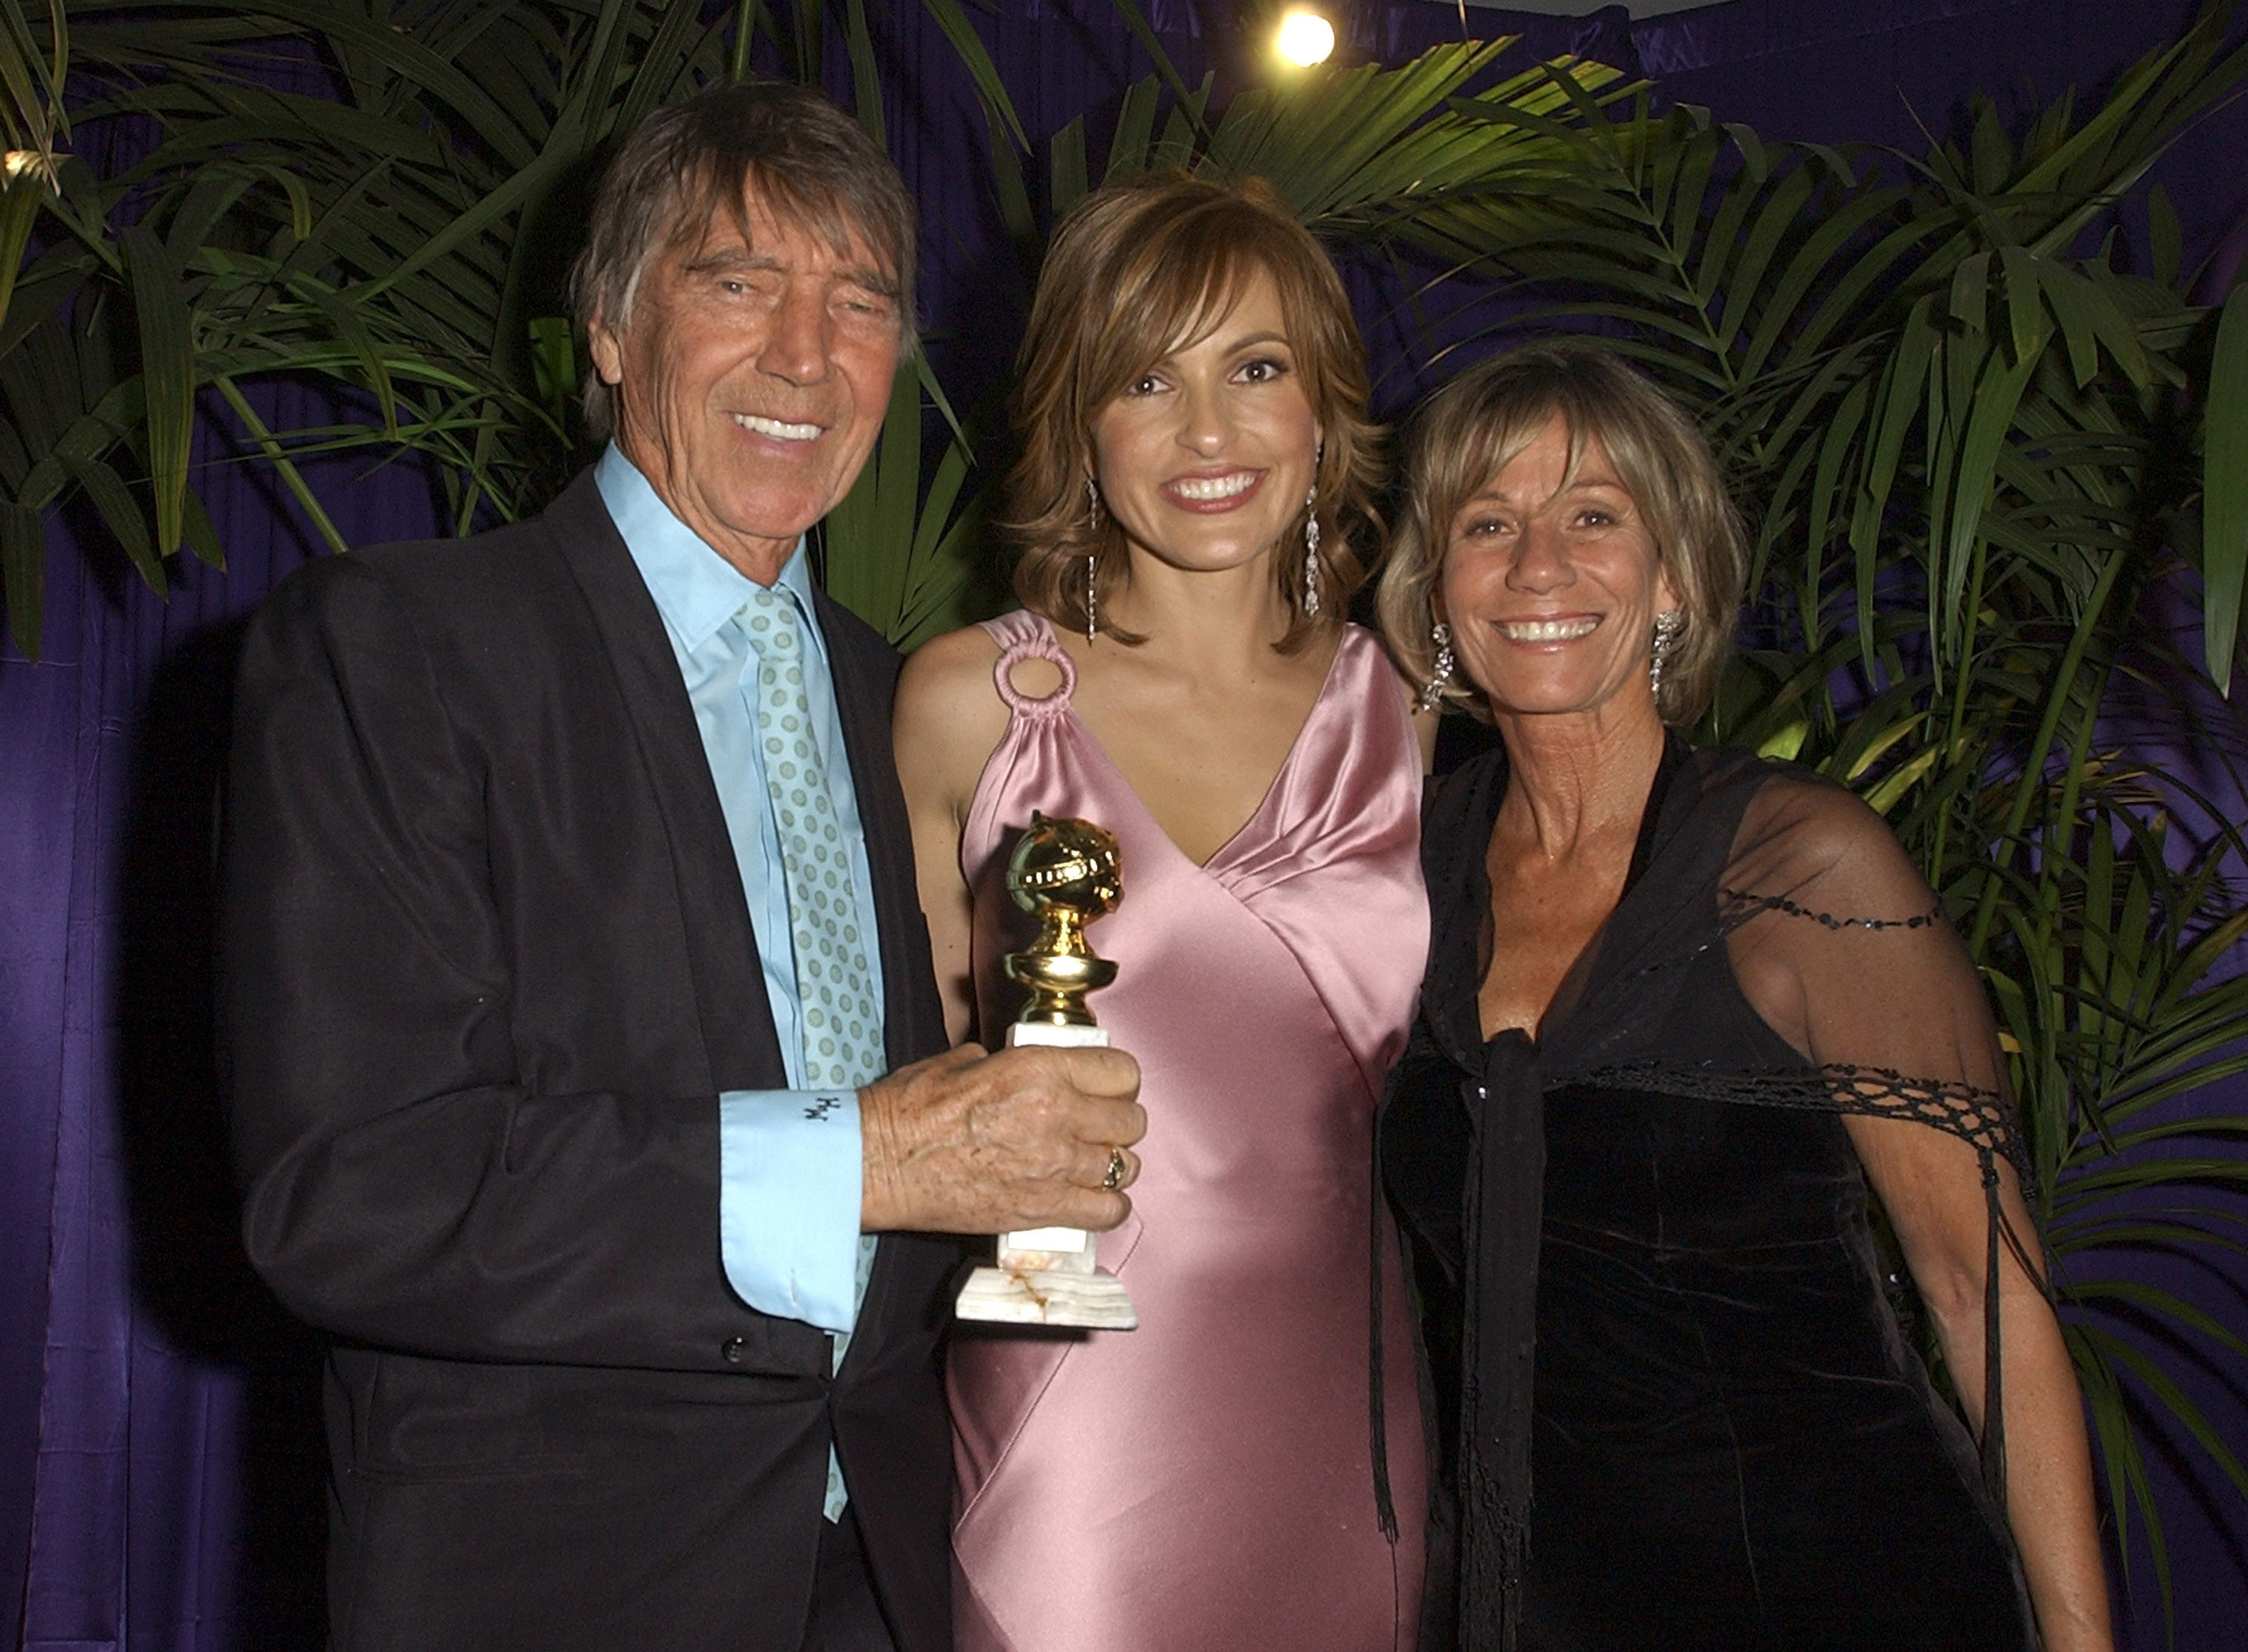 Marishka Hargitay with her father Mickey Hargitay, and stepmother Ellen Siano at the 2005 Golden Globe Awards | Source: Getty Images